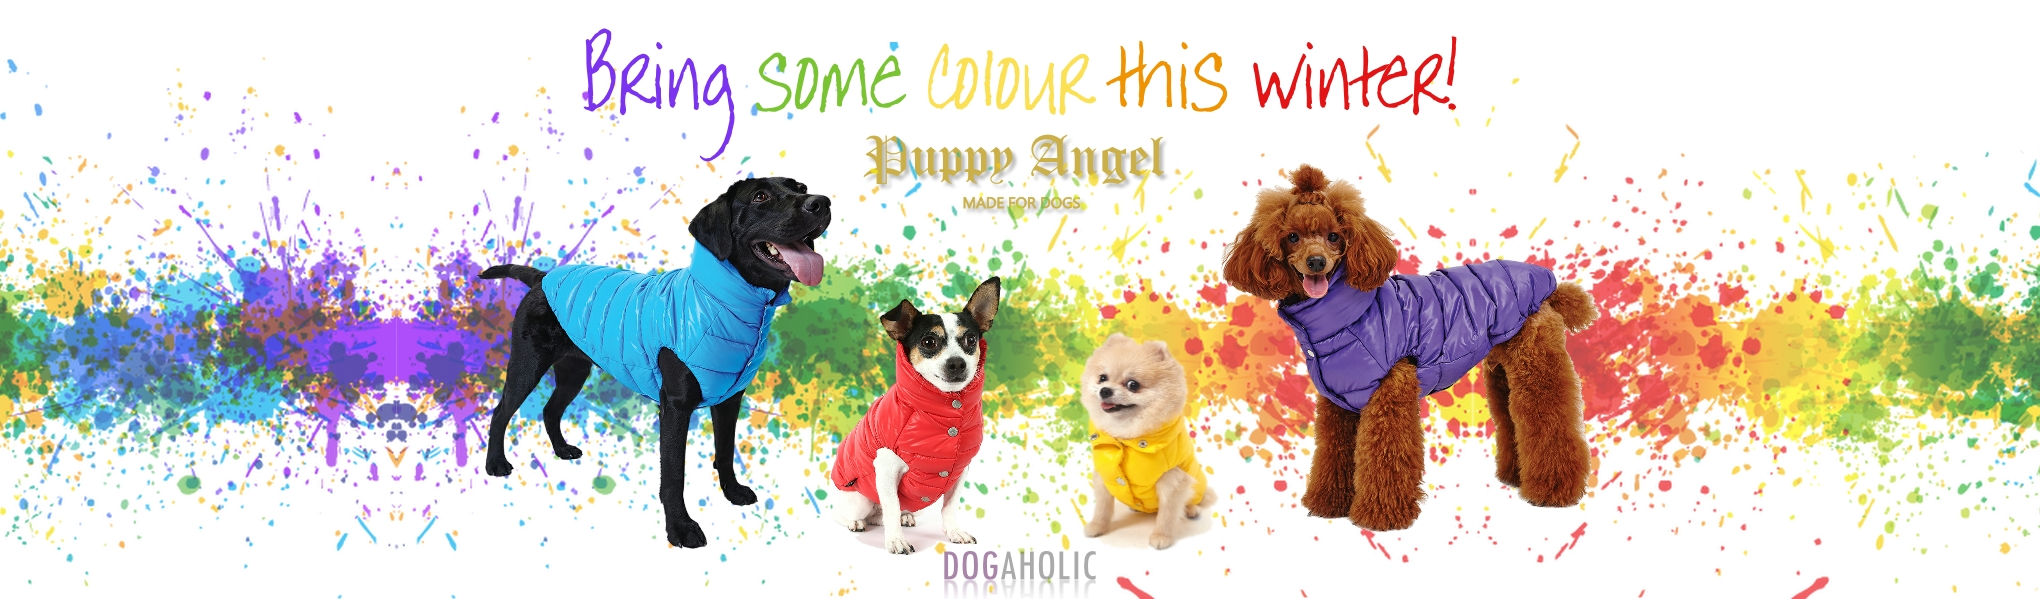 Dogaholic-Puppy-Angel-Coats-2016